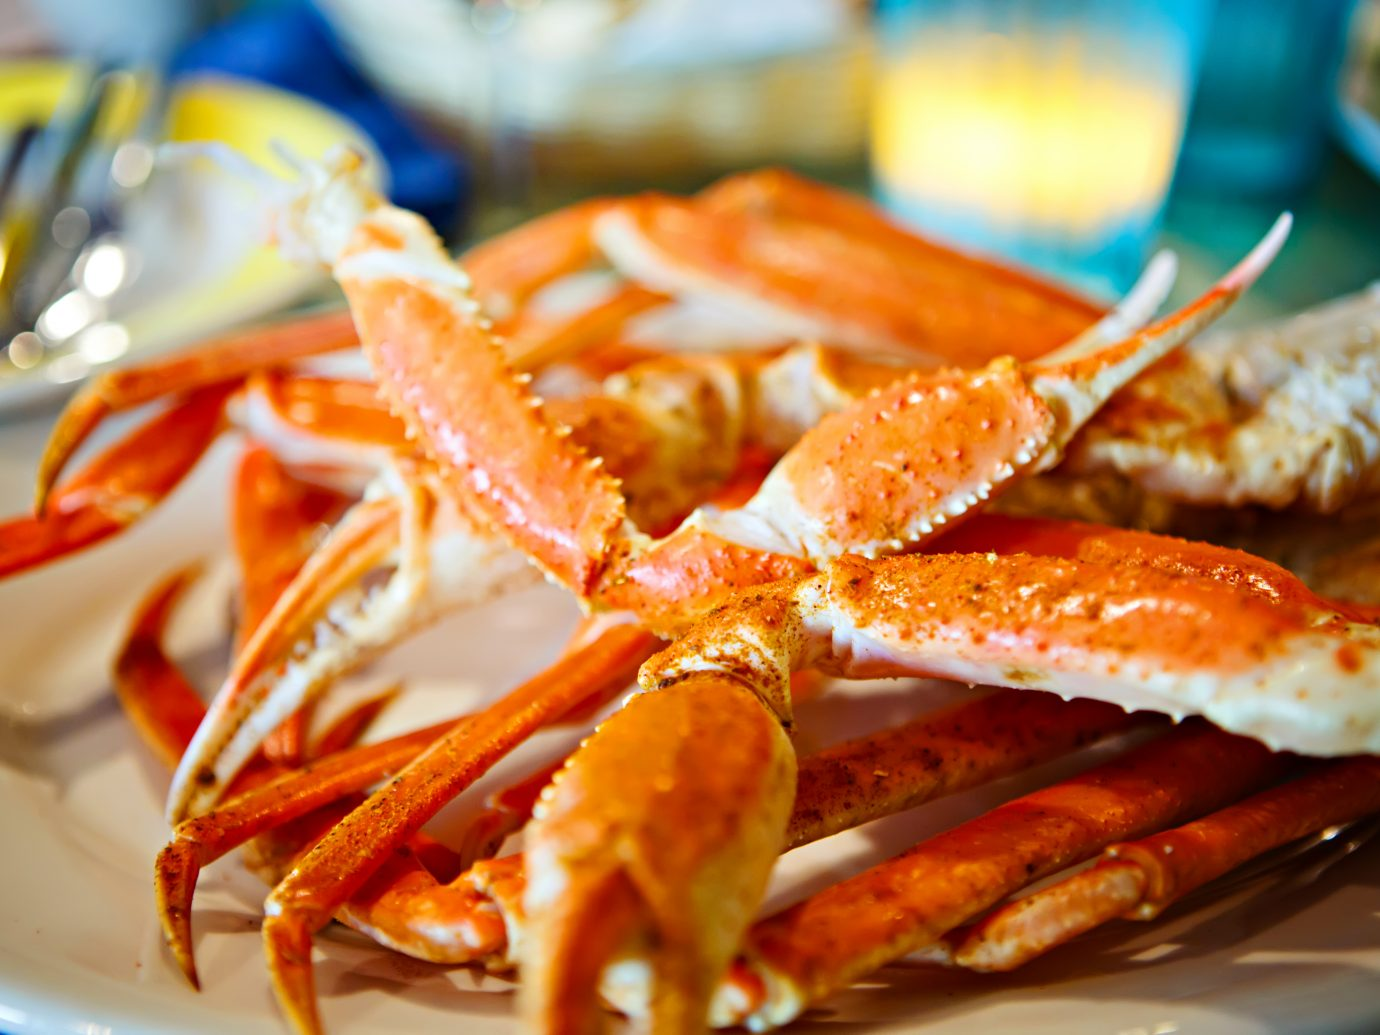 Plate with crab legs in a restaurant in Key West or New Orleans. Tasty delicious seafood.